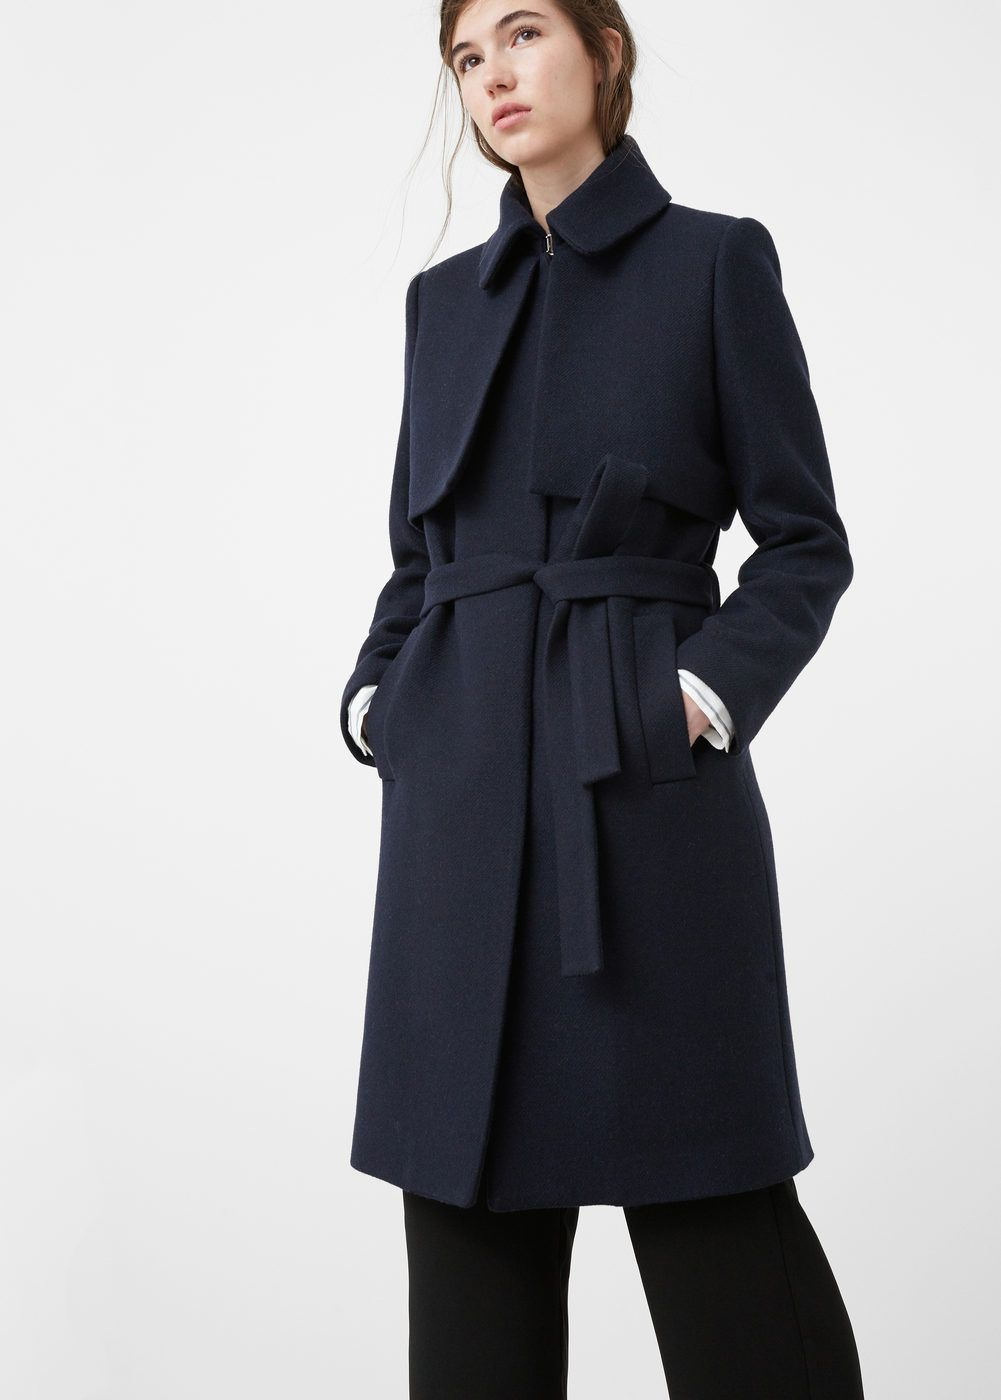 Belted wool coat | Wool coats and Coats